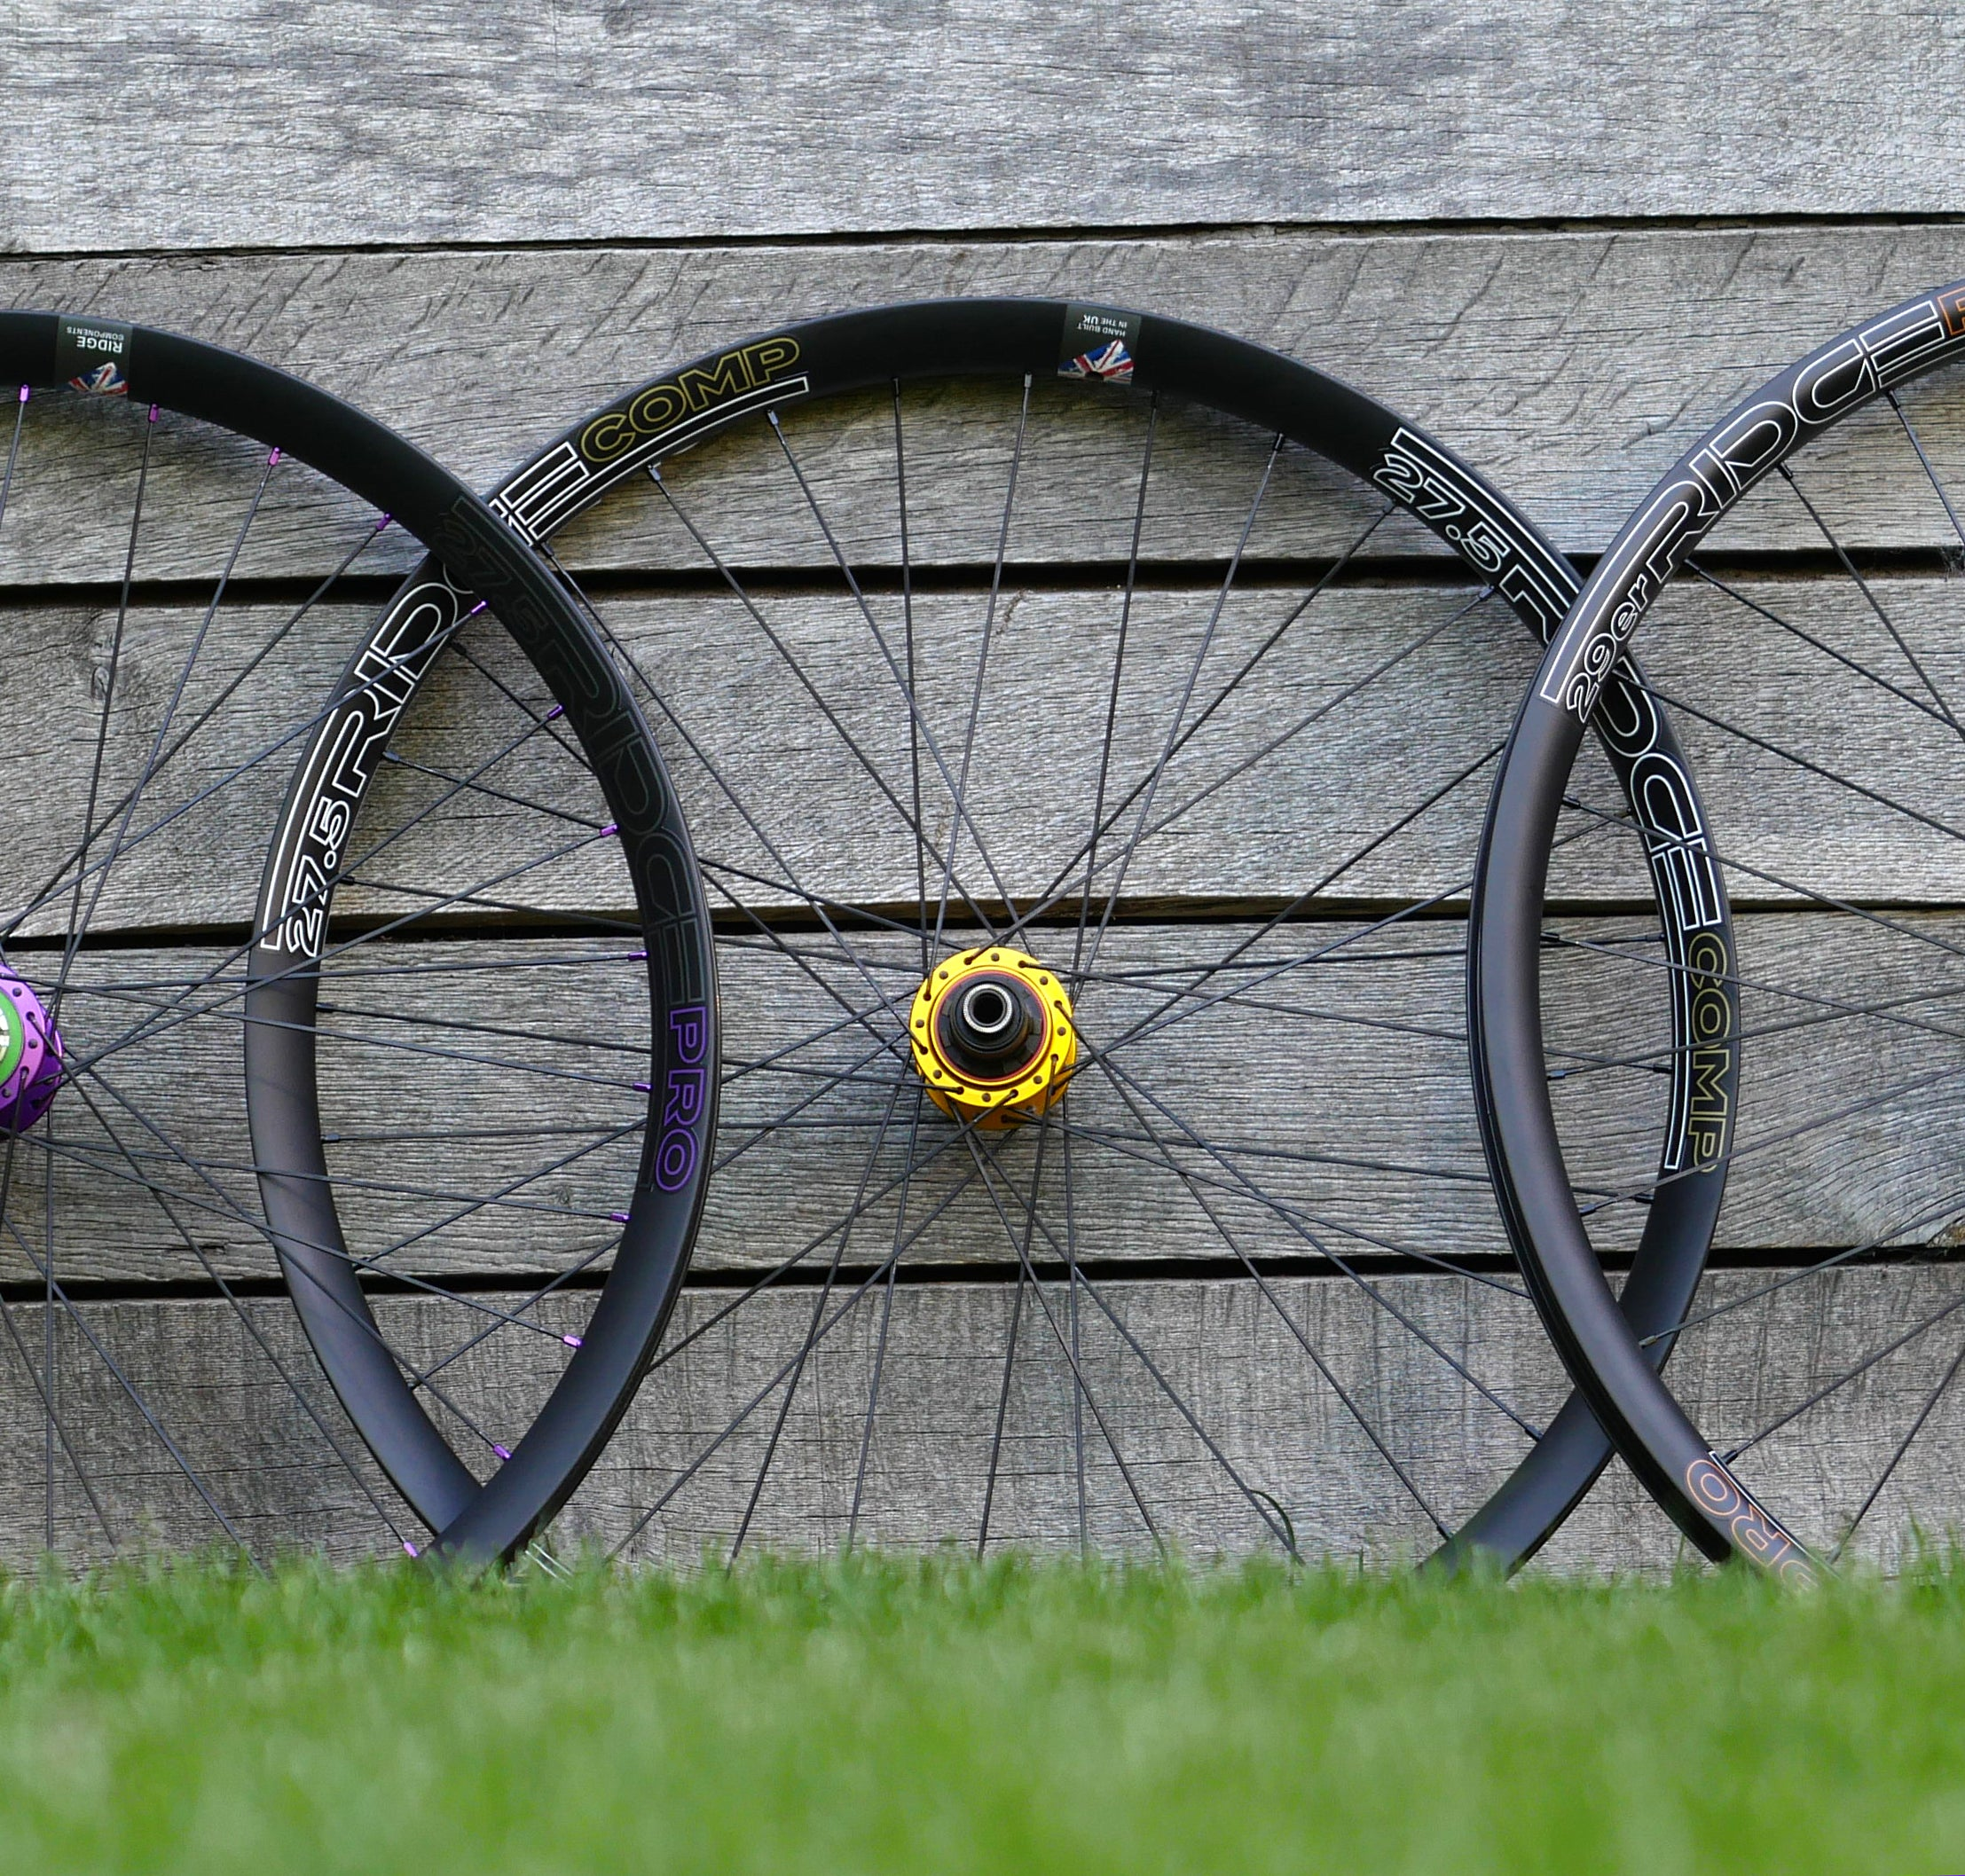 Ridge Comp 27.5 Wheel Set - Ridge Hubs